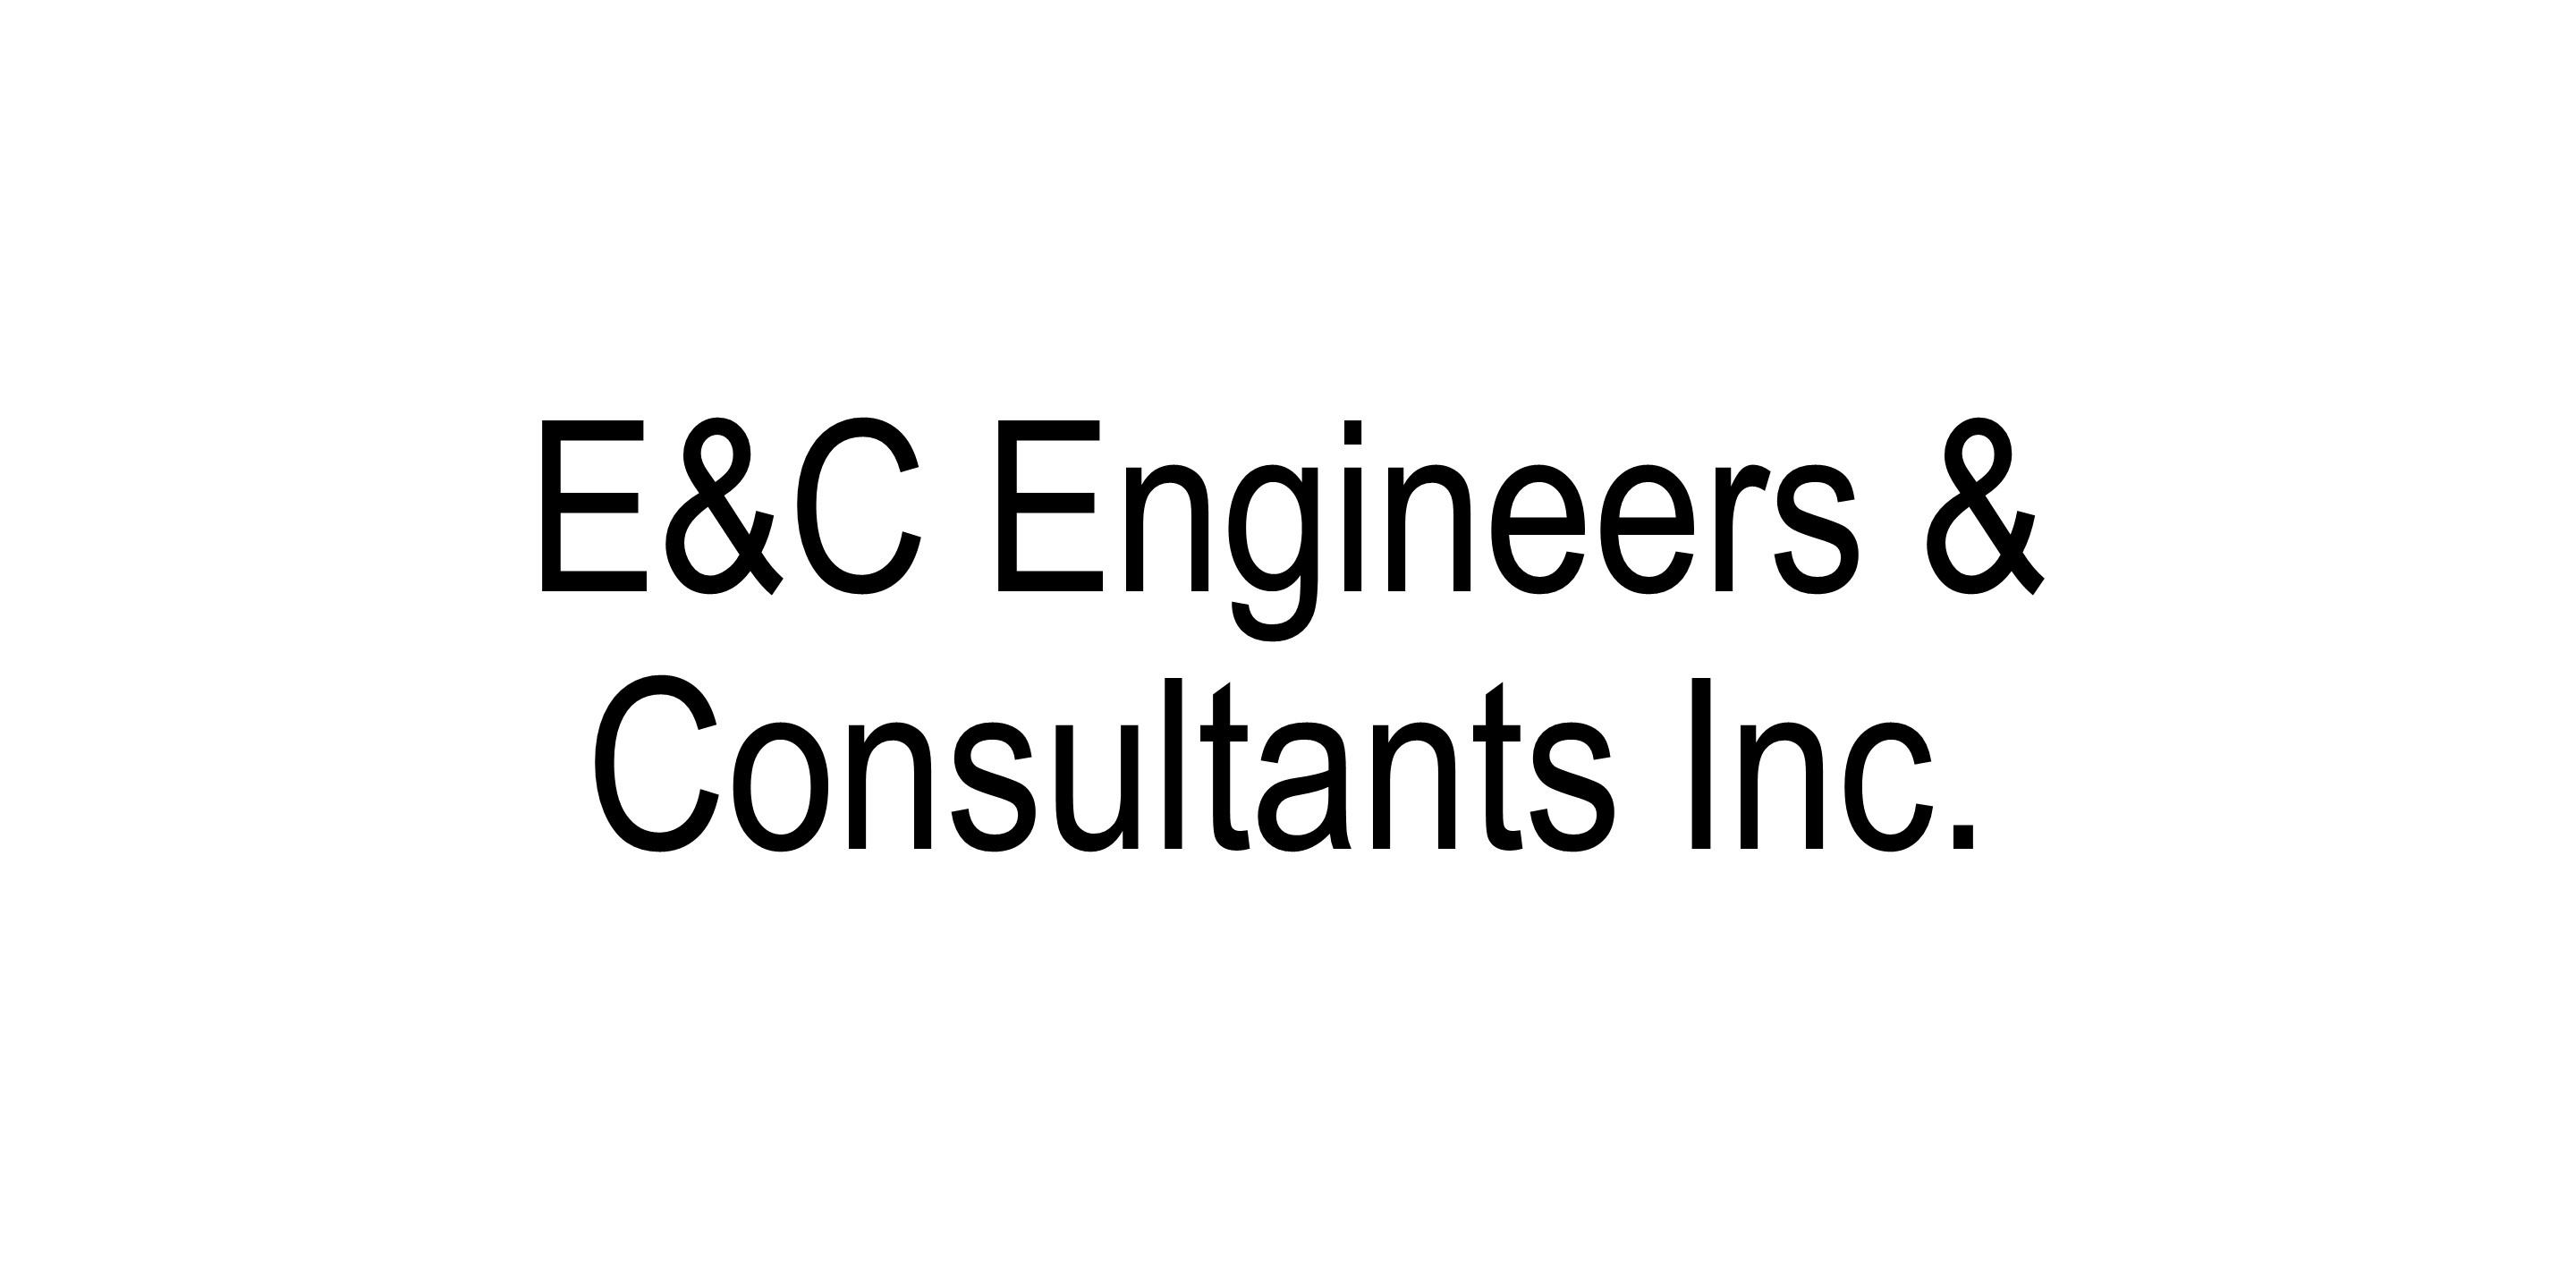 E&C Engineers and Consultants logo